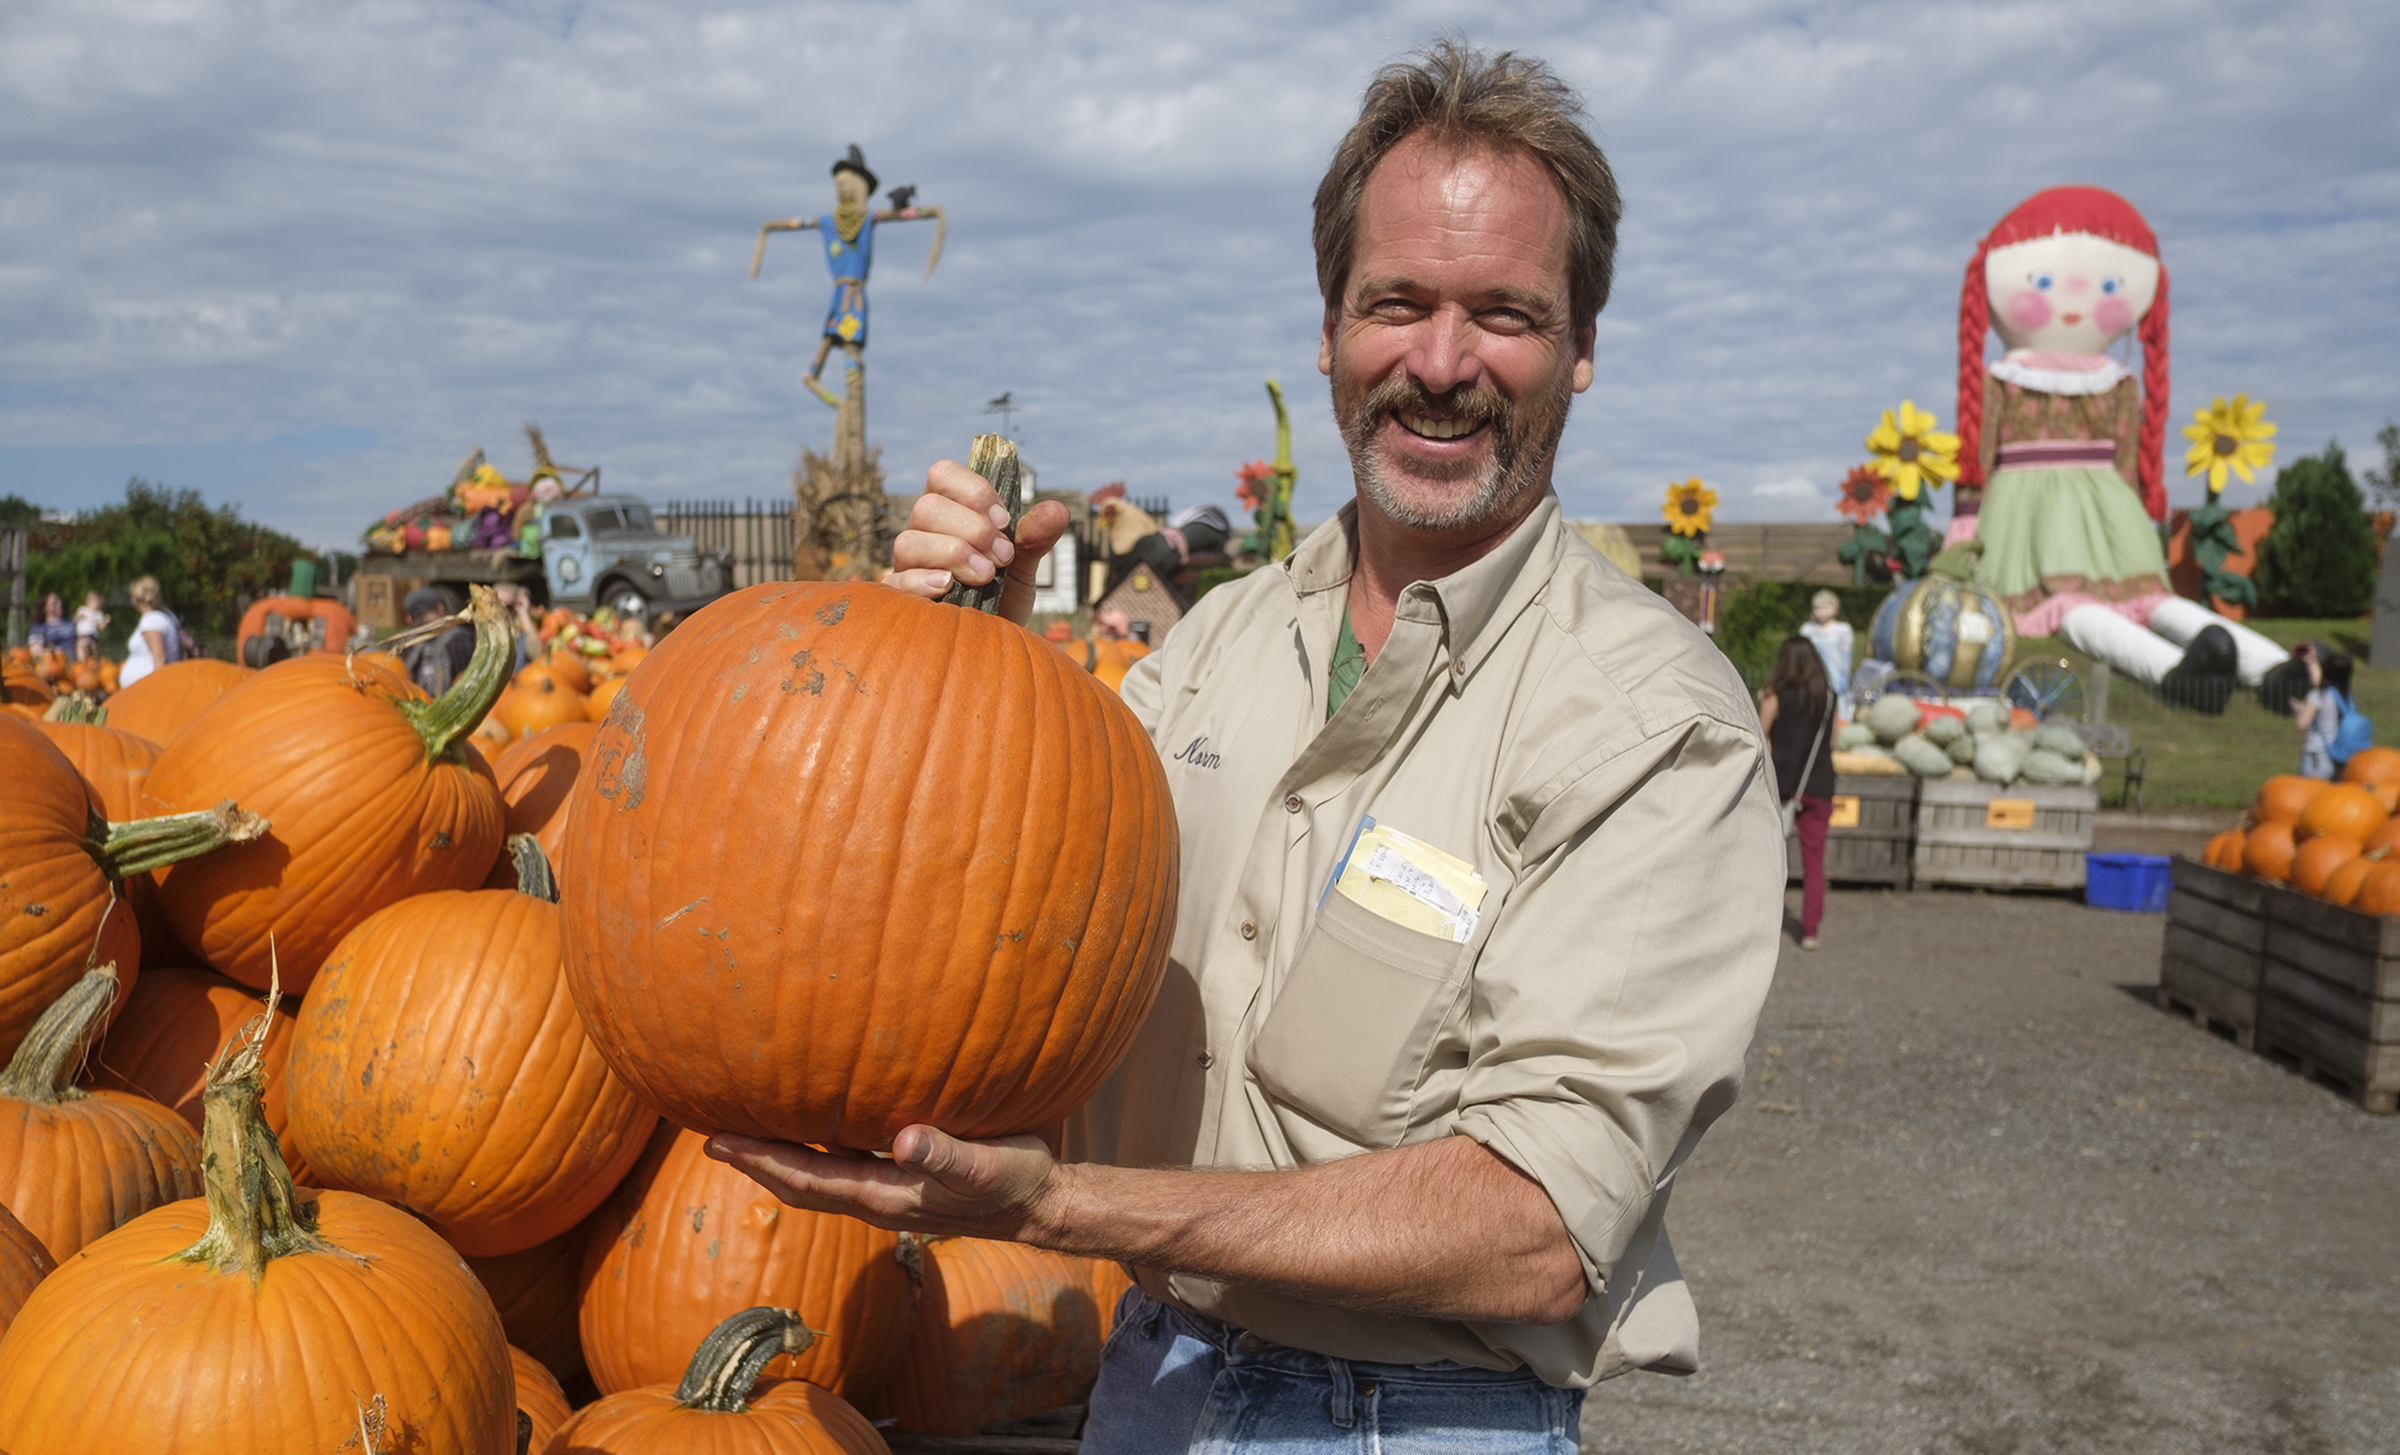 Farm manager Norm Schultz shows off a 20lb pumpkin in Pumpkinland at Linvilla Orchards.